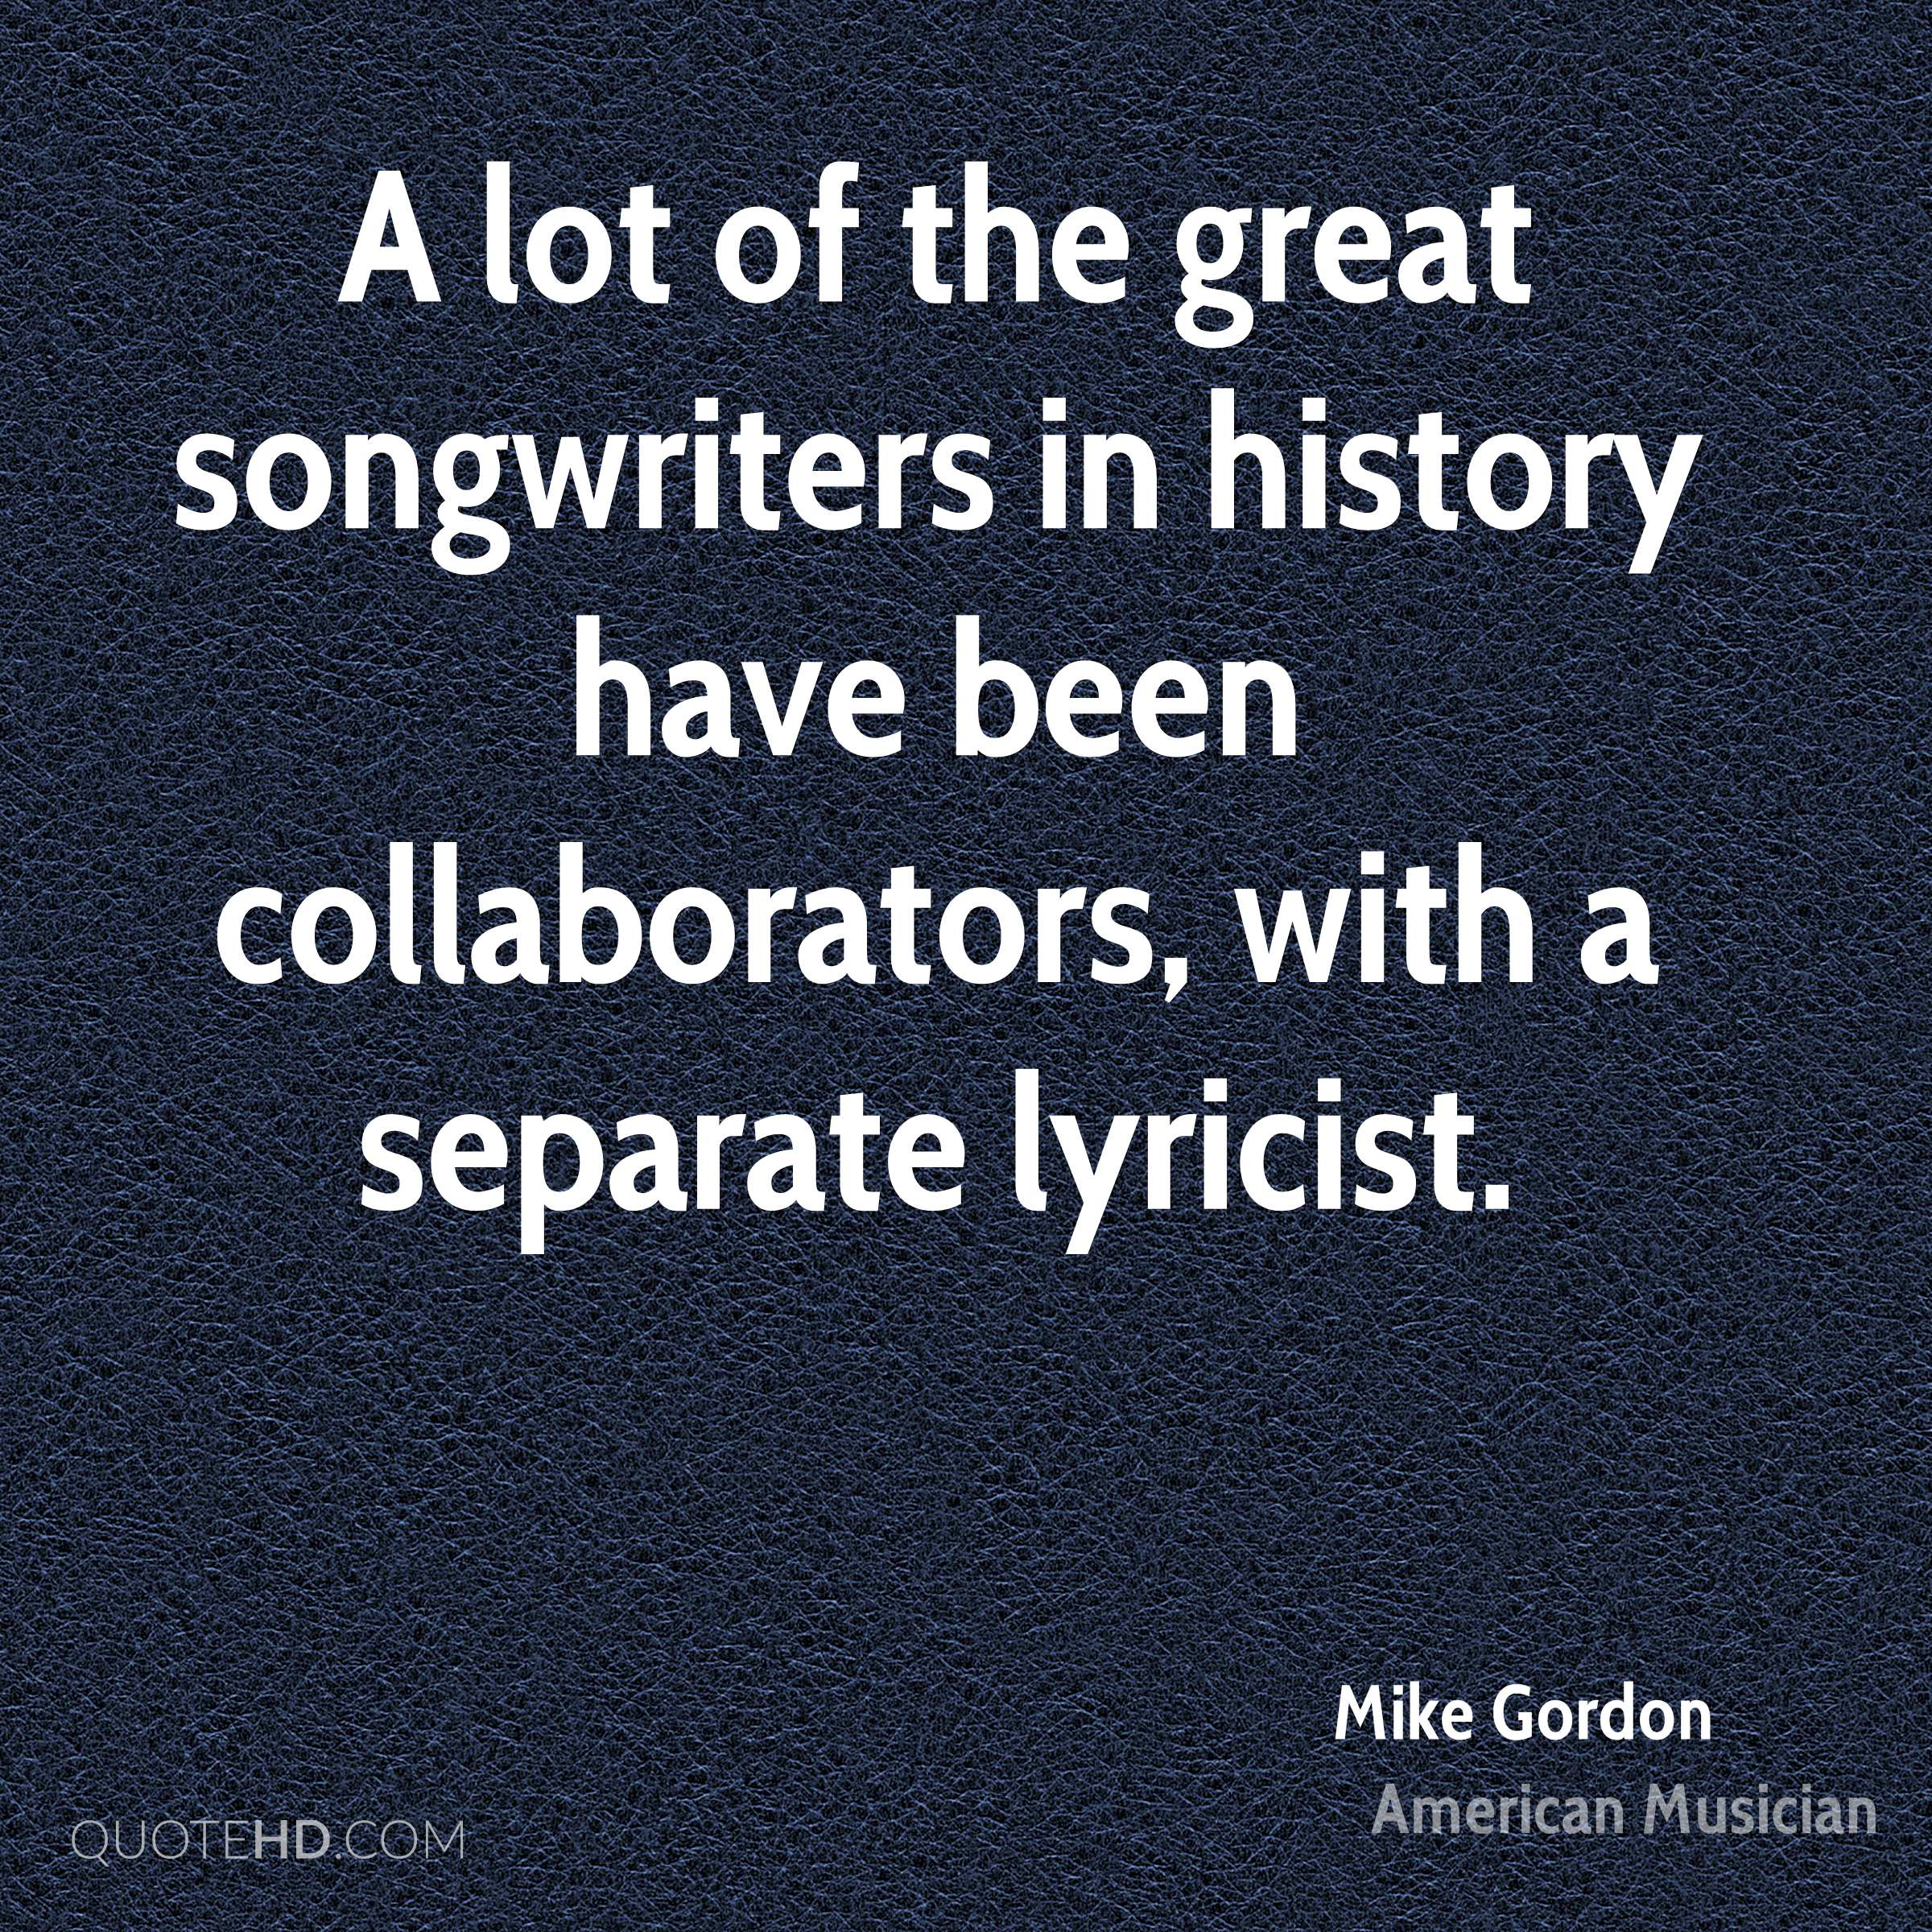 A lot of the great songwriters in history have been collaborators, with a separate lyricist.